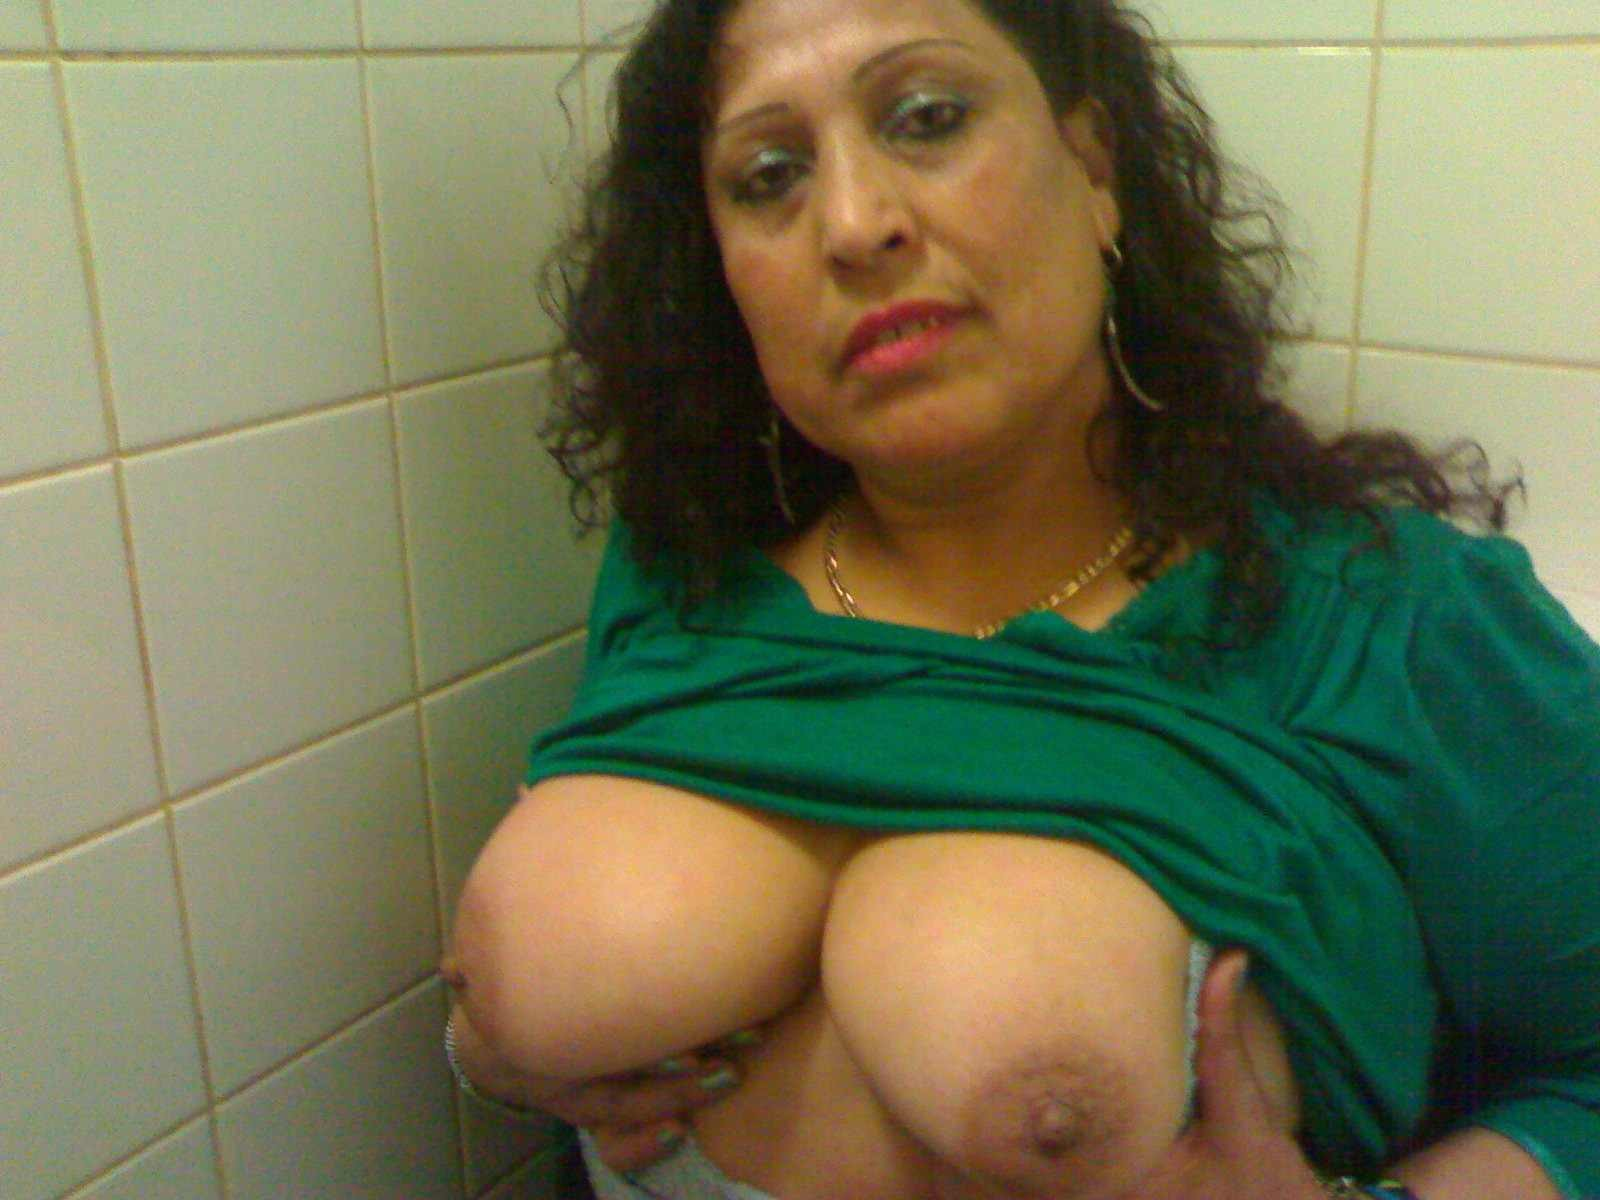 consider, sl boobs chaturika peris recommend you come for